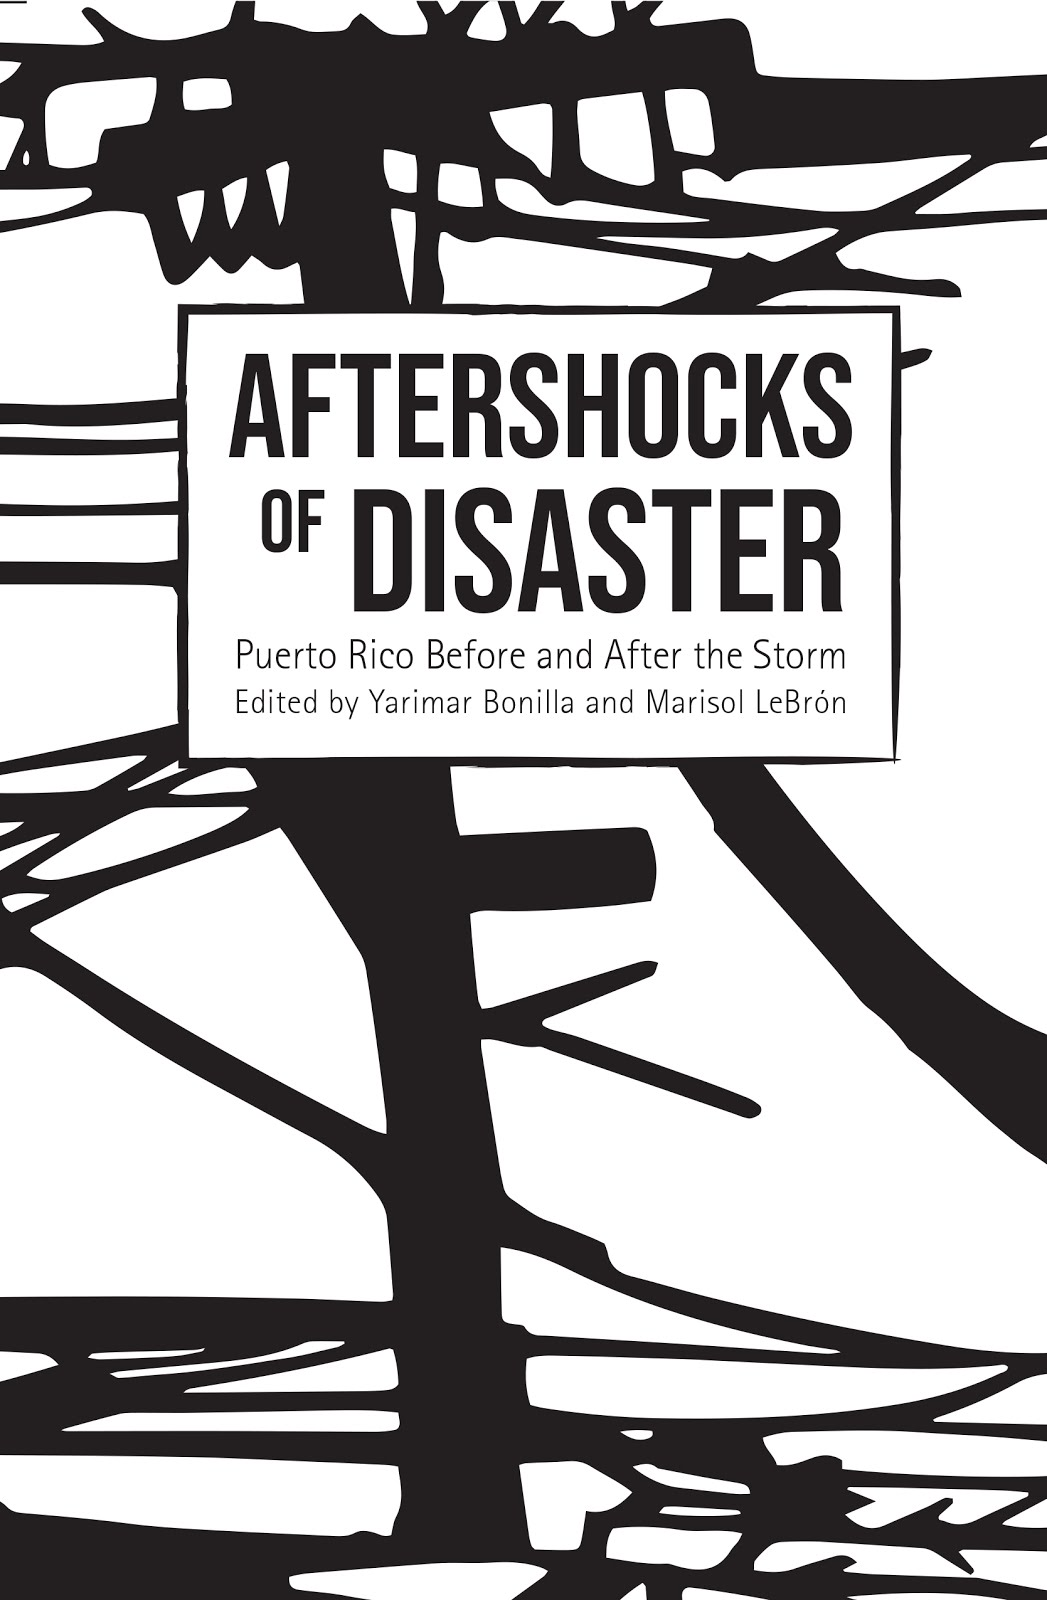 ANTOLOGÍA: Aftershocks of disaster